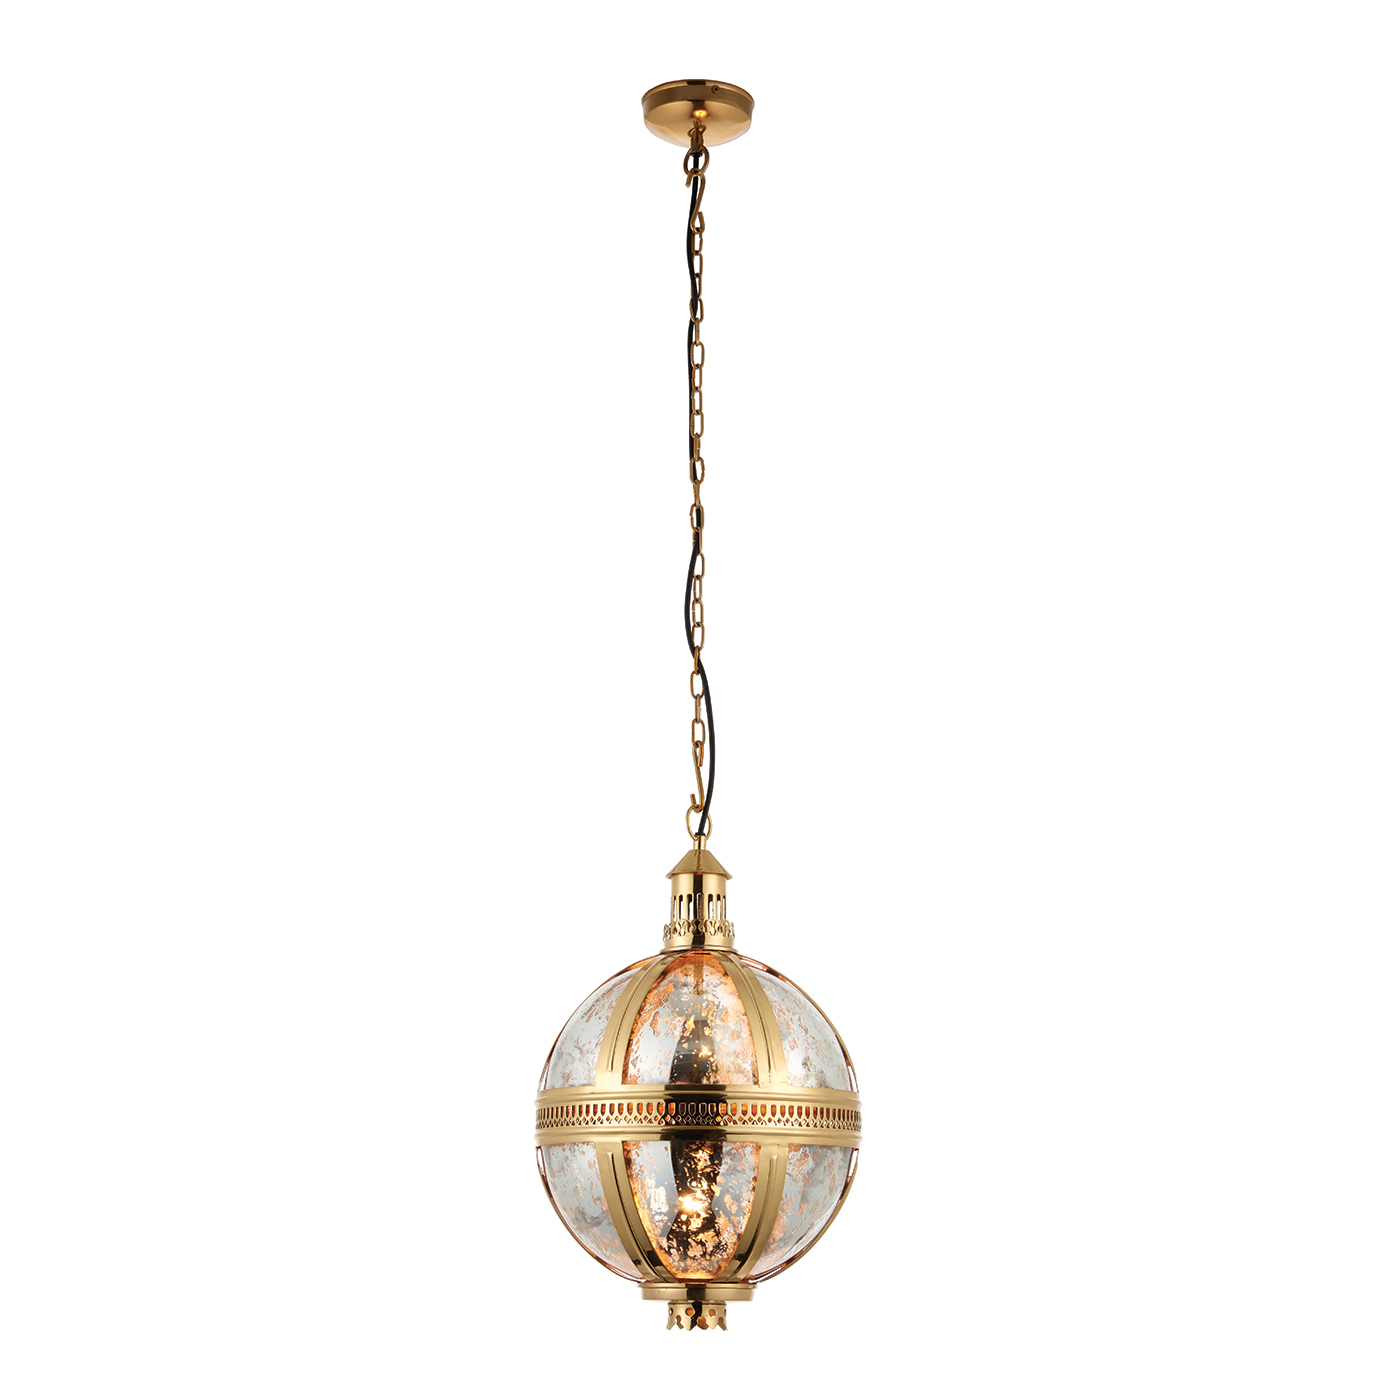 Endon Vienna 305mm pendant 40W Solid brass & mercury glass